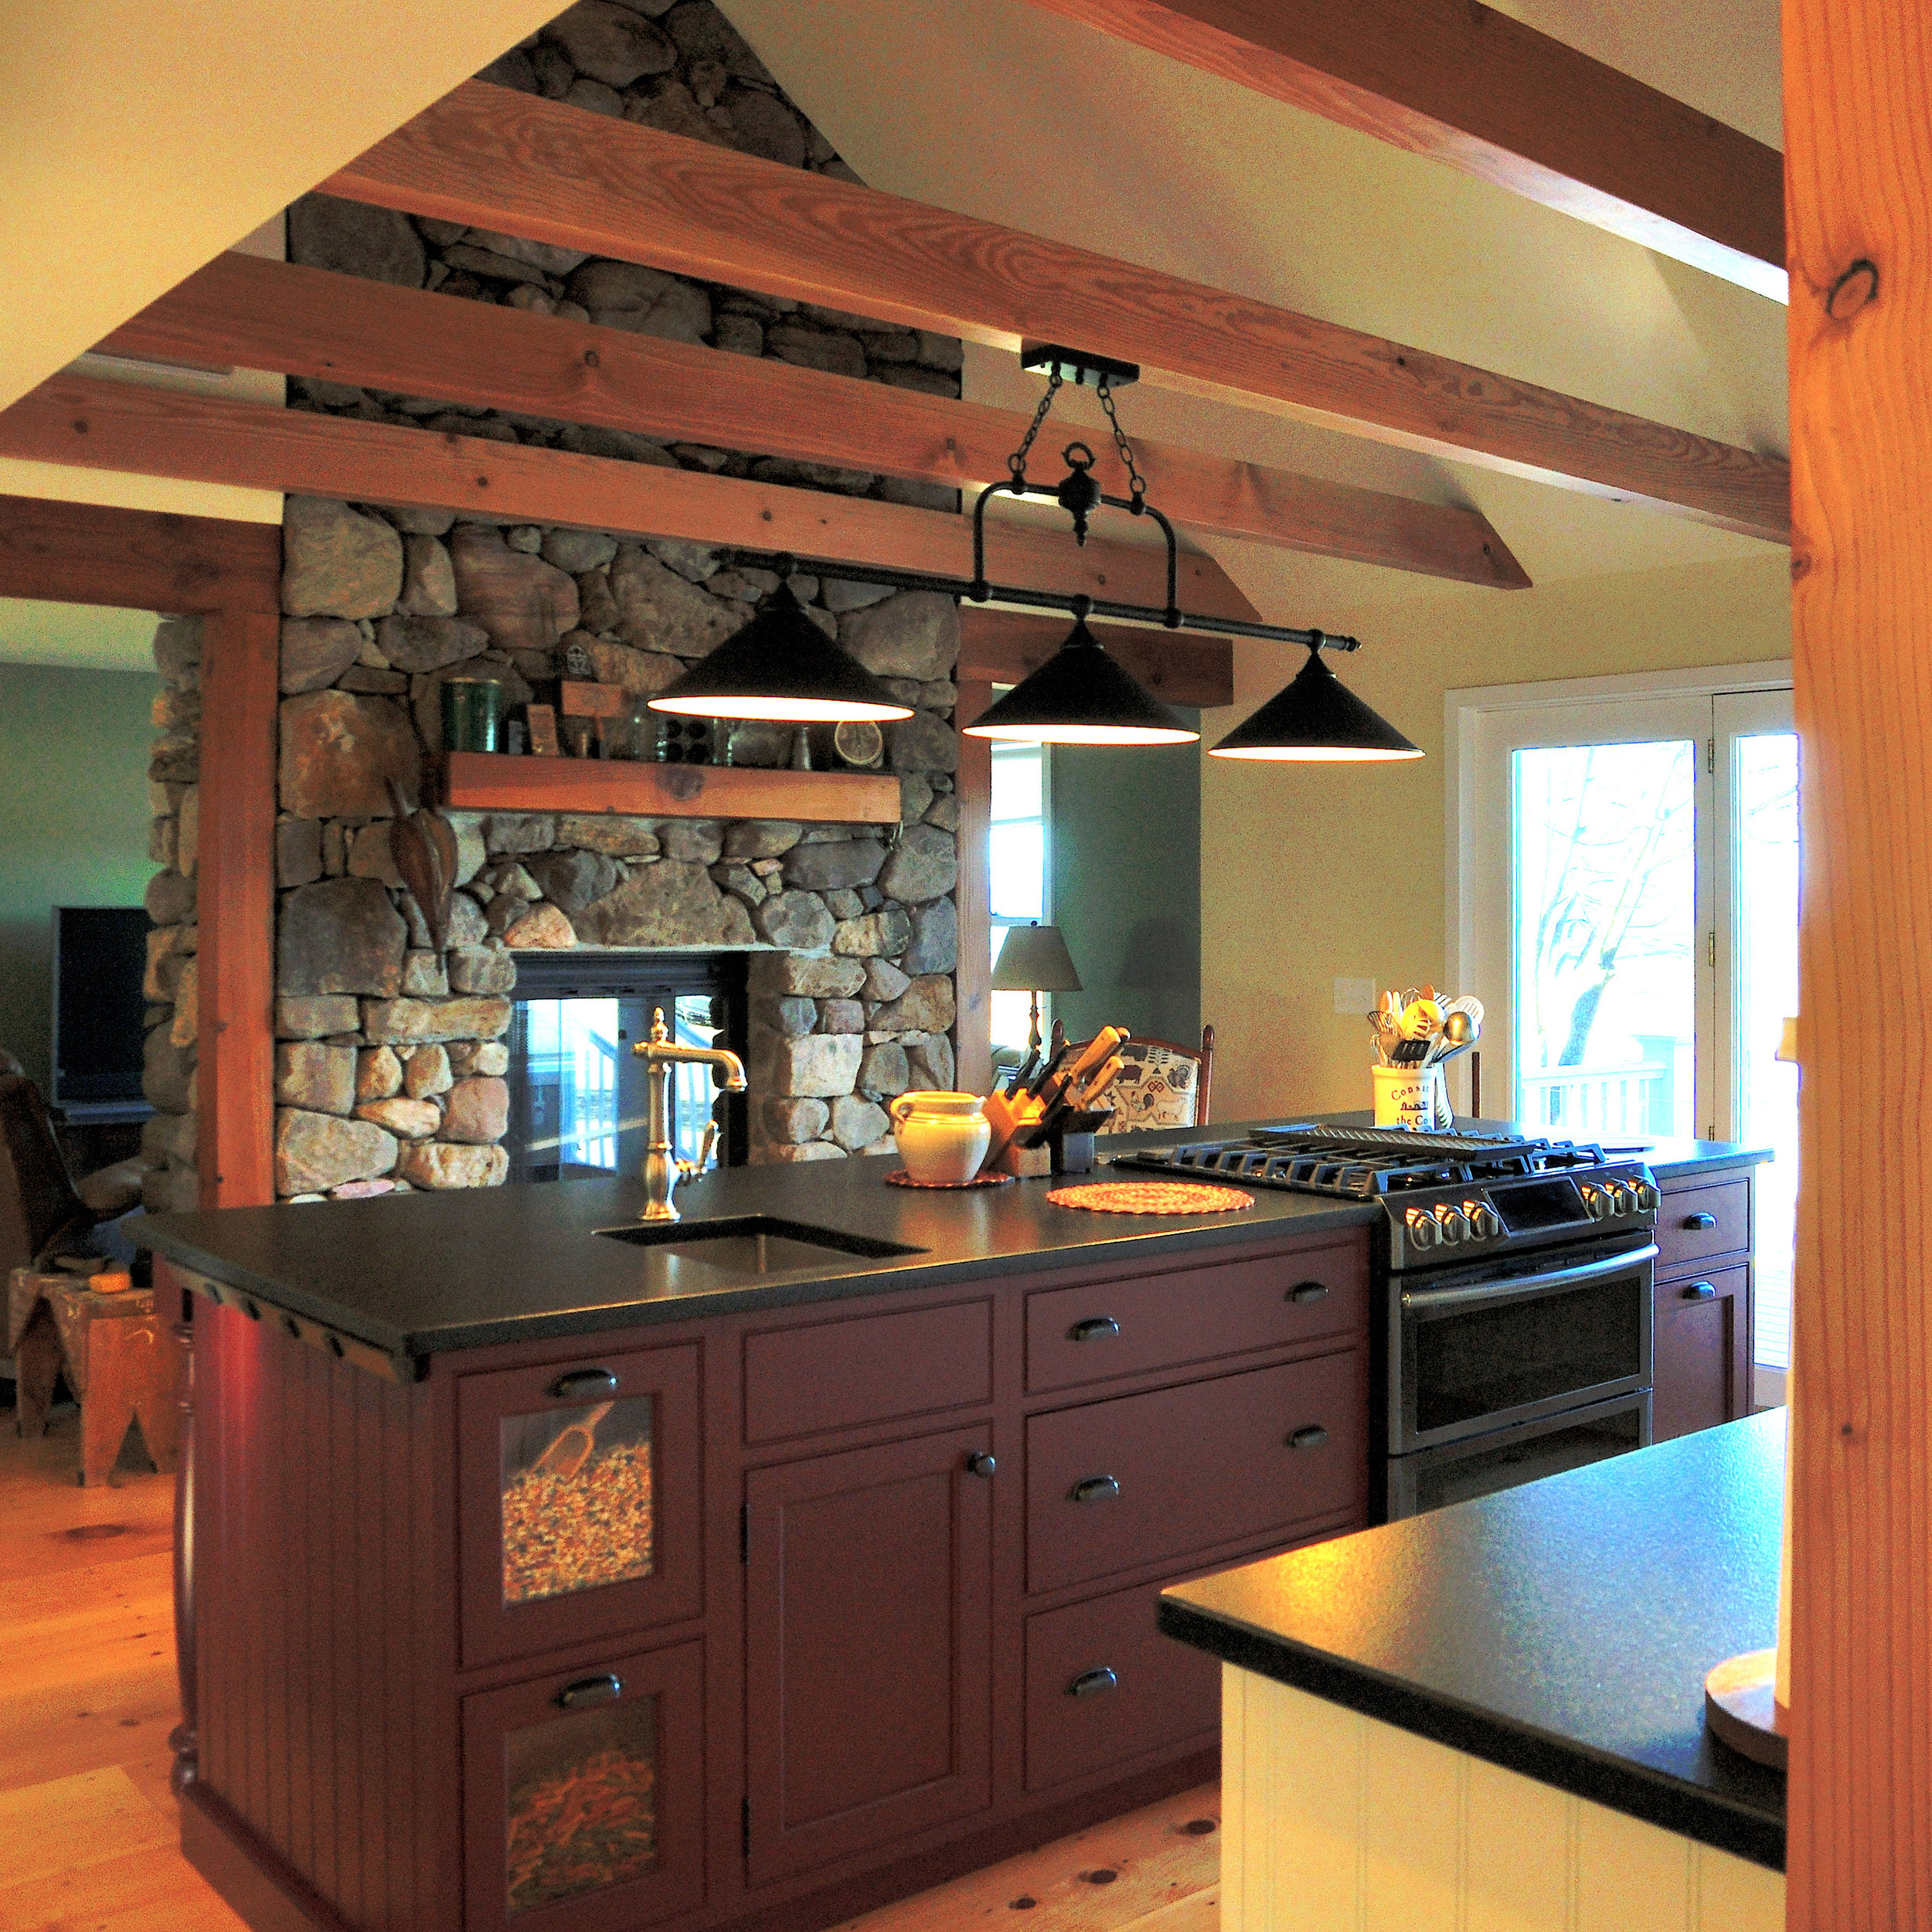 Vaulted Ceiling with Fir Beams,Plato Woodwork Personalized Custom Cabinetry Island